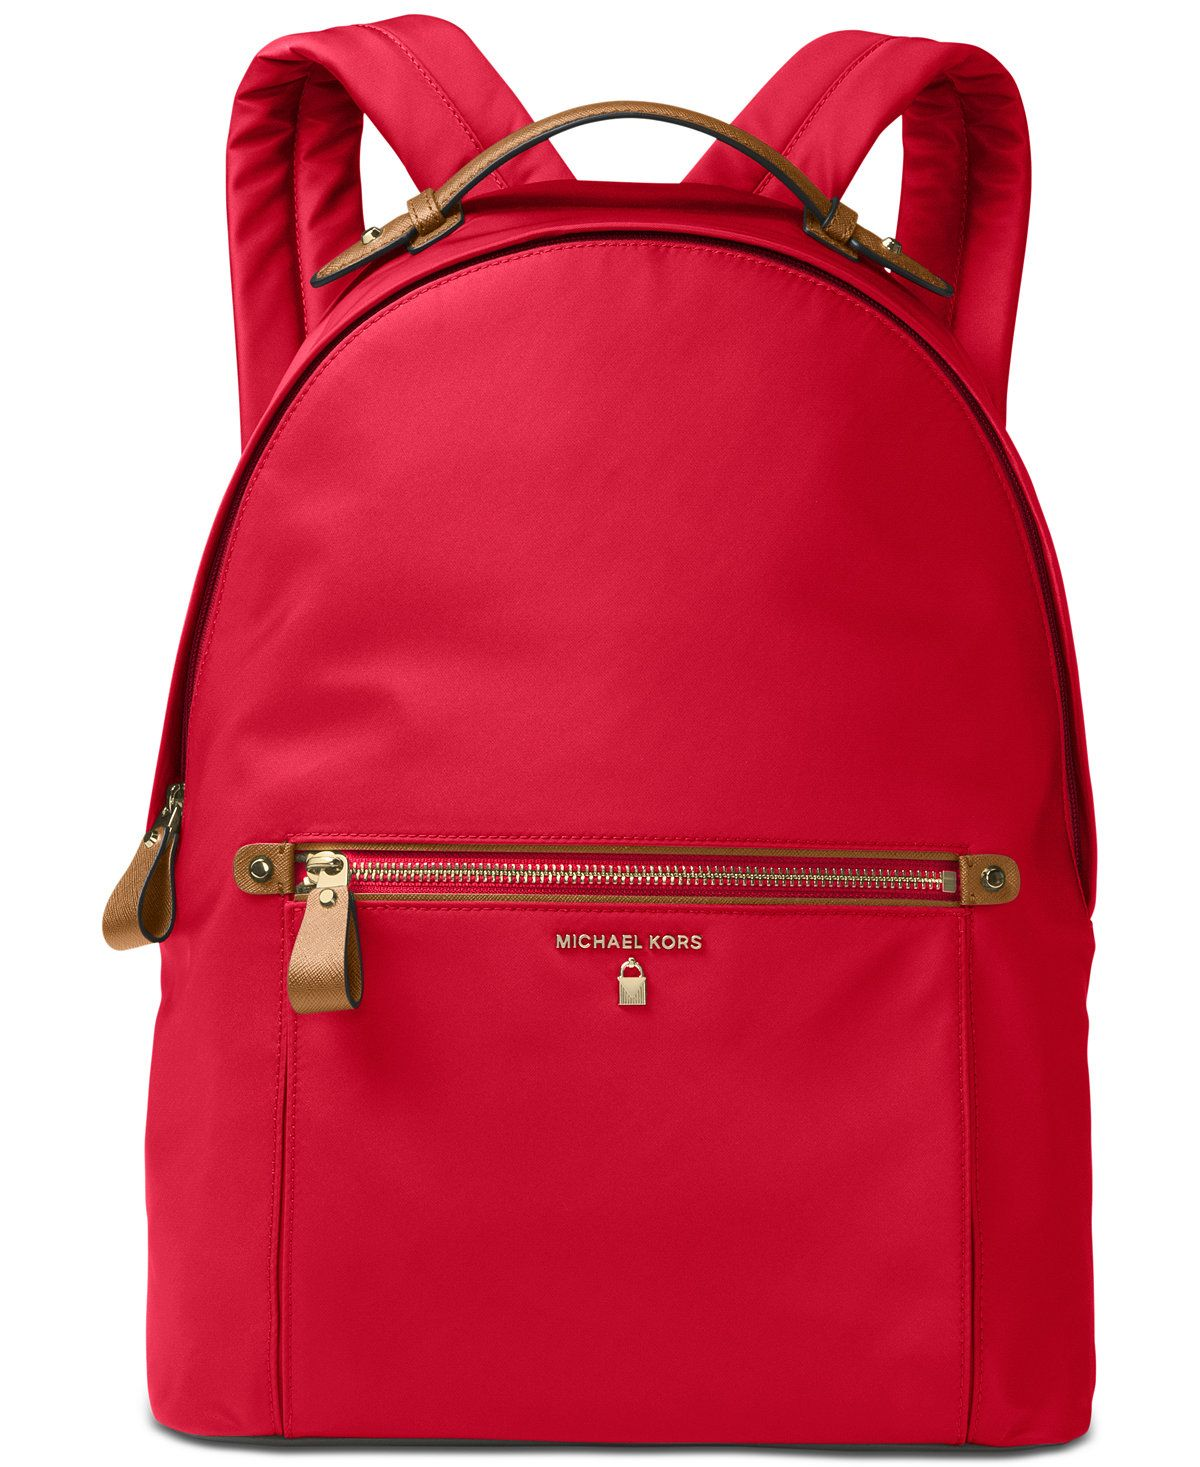 a7a6a060368d MICHAEL Michael Kors Kelsey Large Backpack - Handbags   Accessories - Macy s